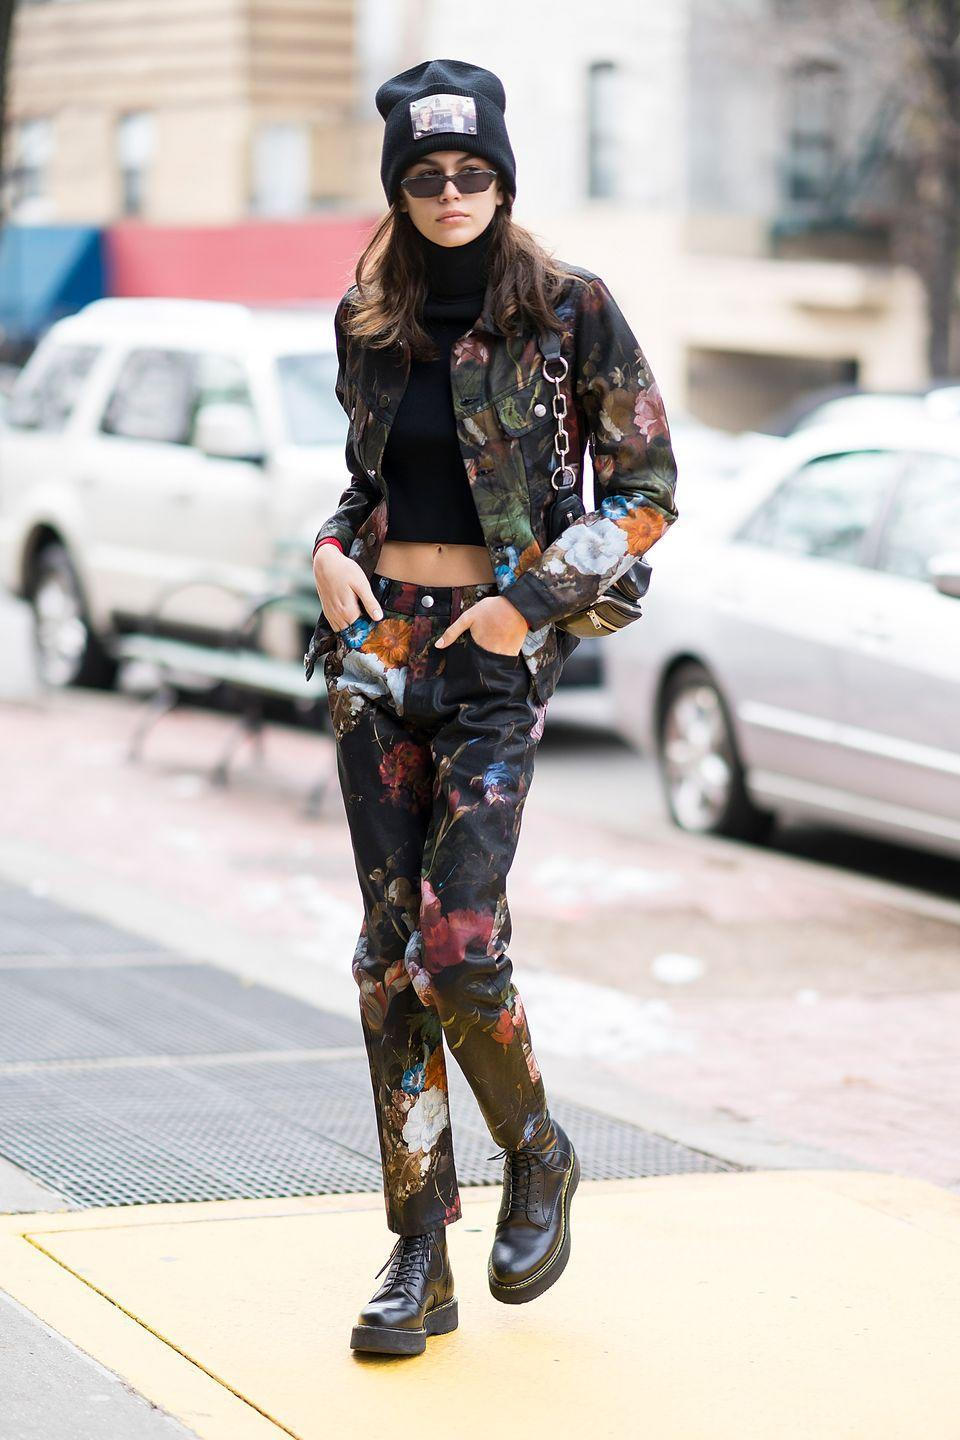 <p>The model wore a patching floral printed denim jacket and jeans for a day out in NYC. She accessorised the look with a pair of black lace-up boots and a beanie hat. </p>